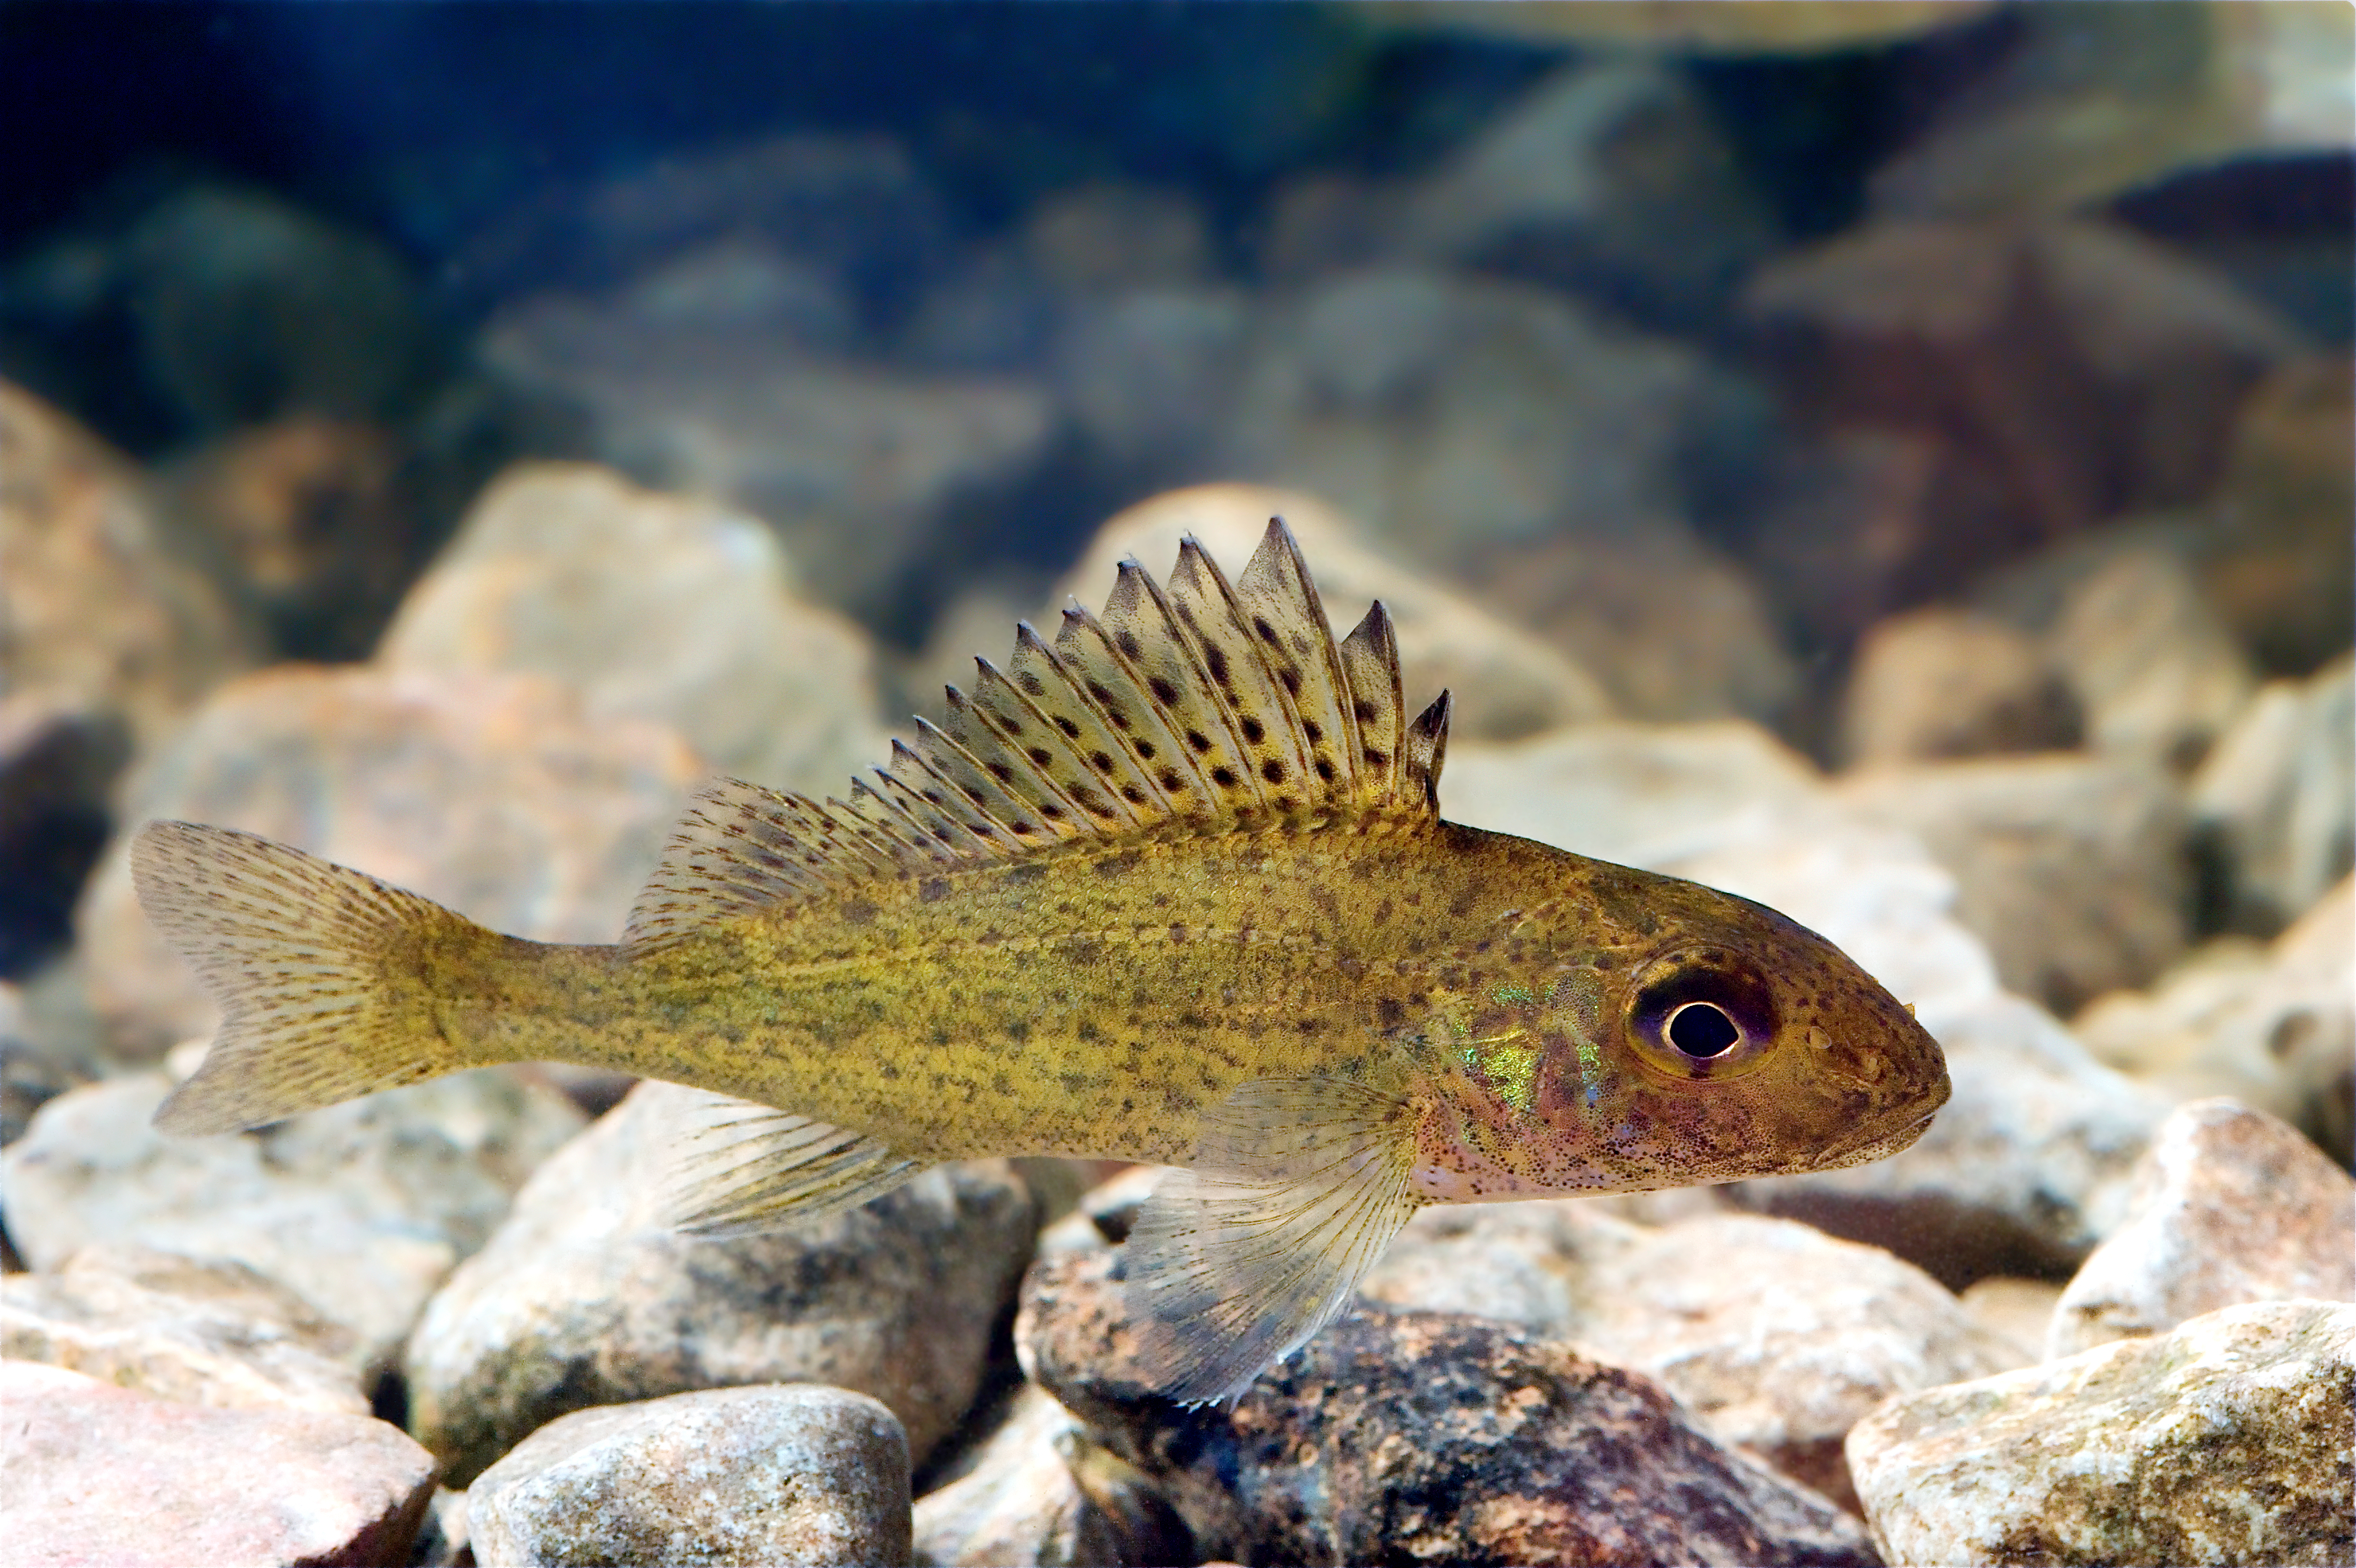 A Ruffe in the Pärnu River of Estonia, a new featured picture